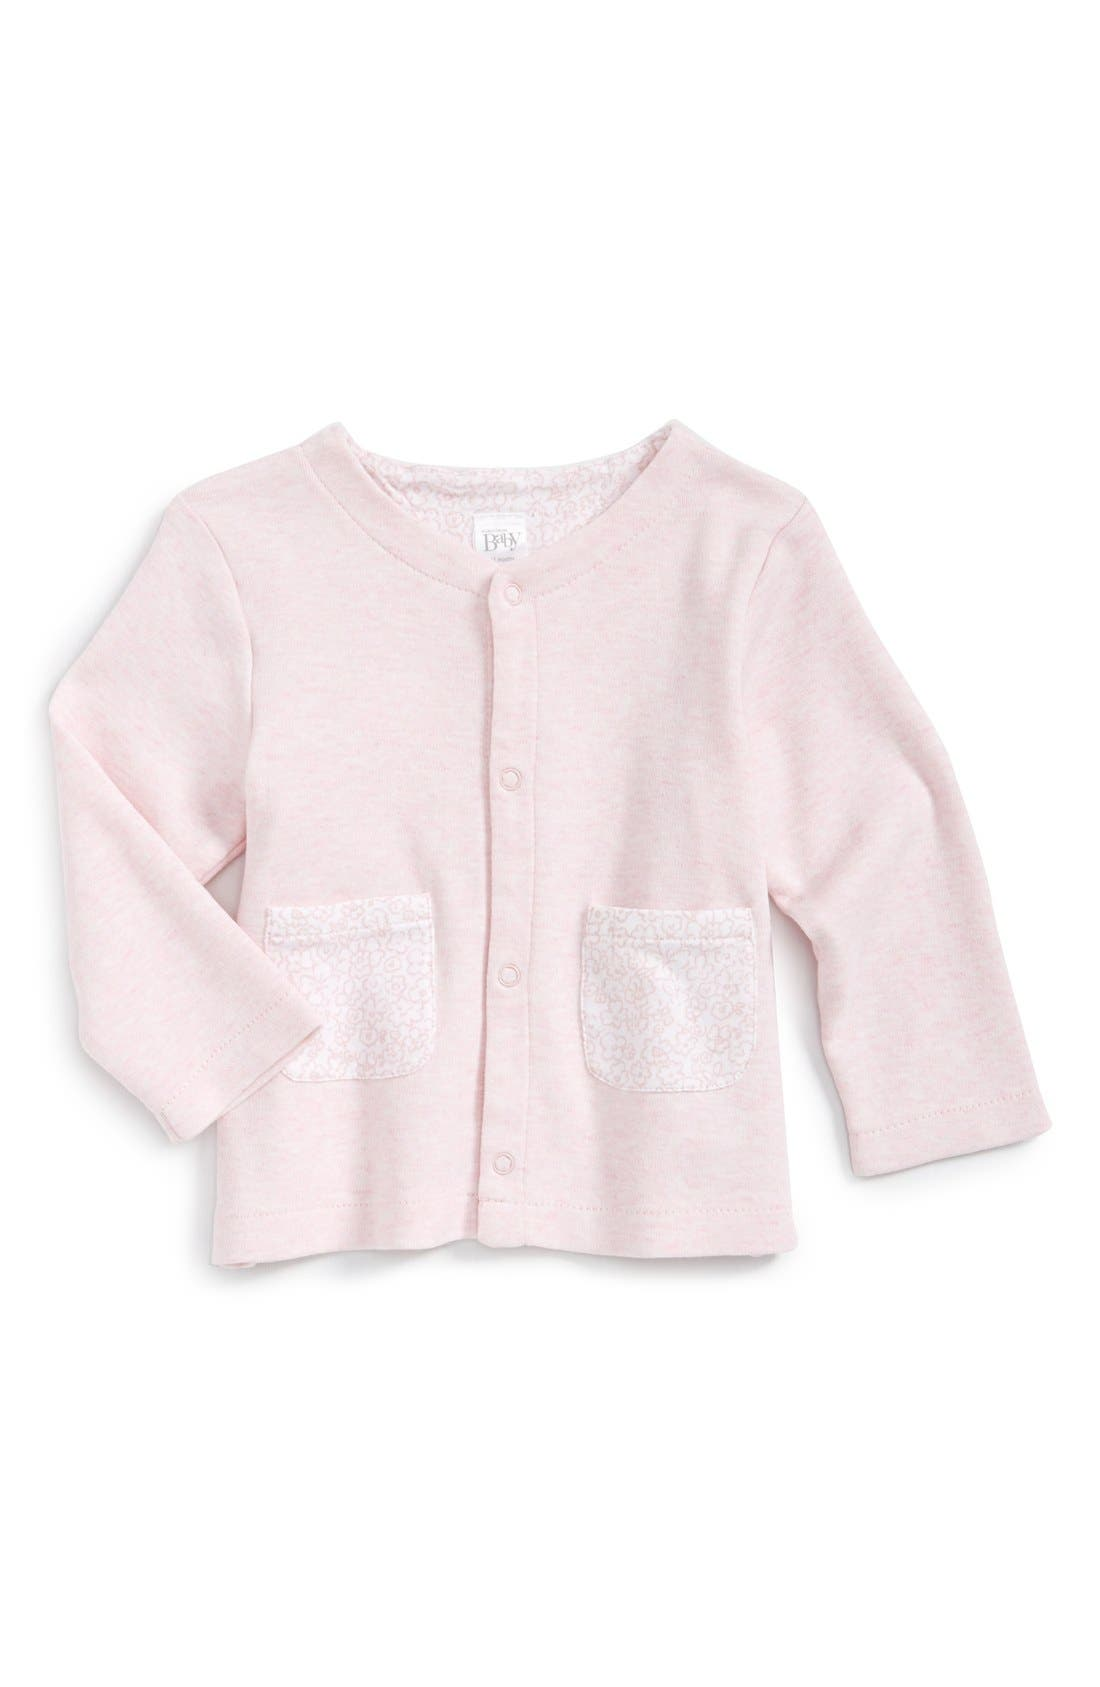 Nordstrom Baby Contrast Pocket Cotton Cardigan (Baby Girls)